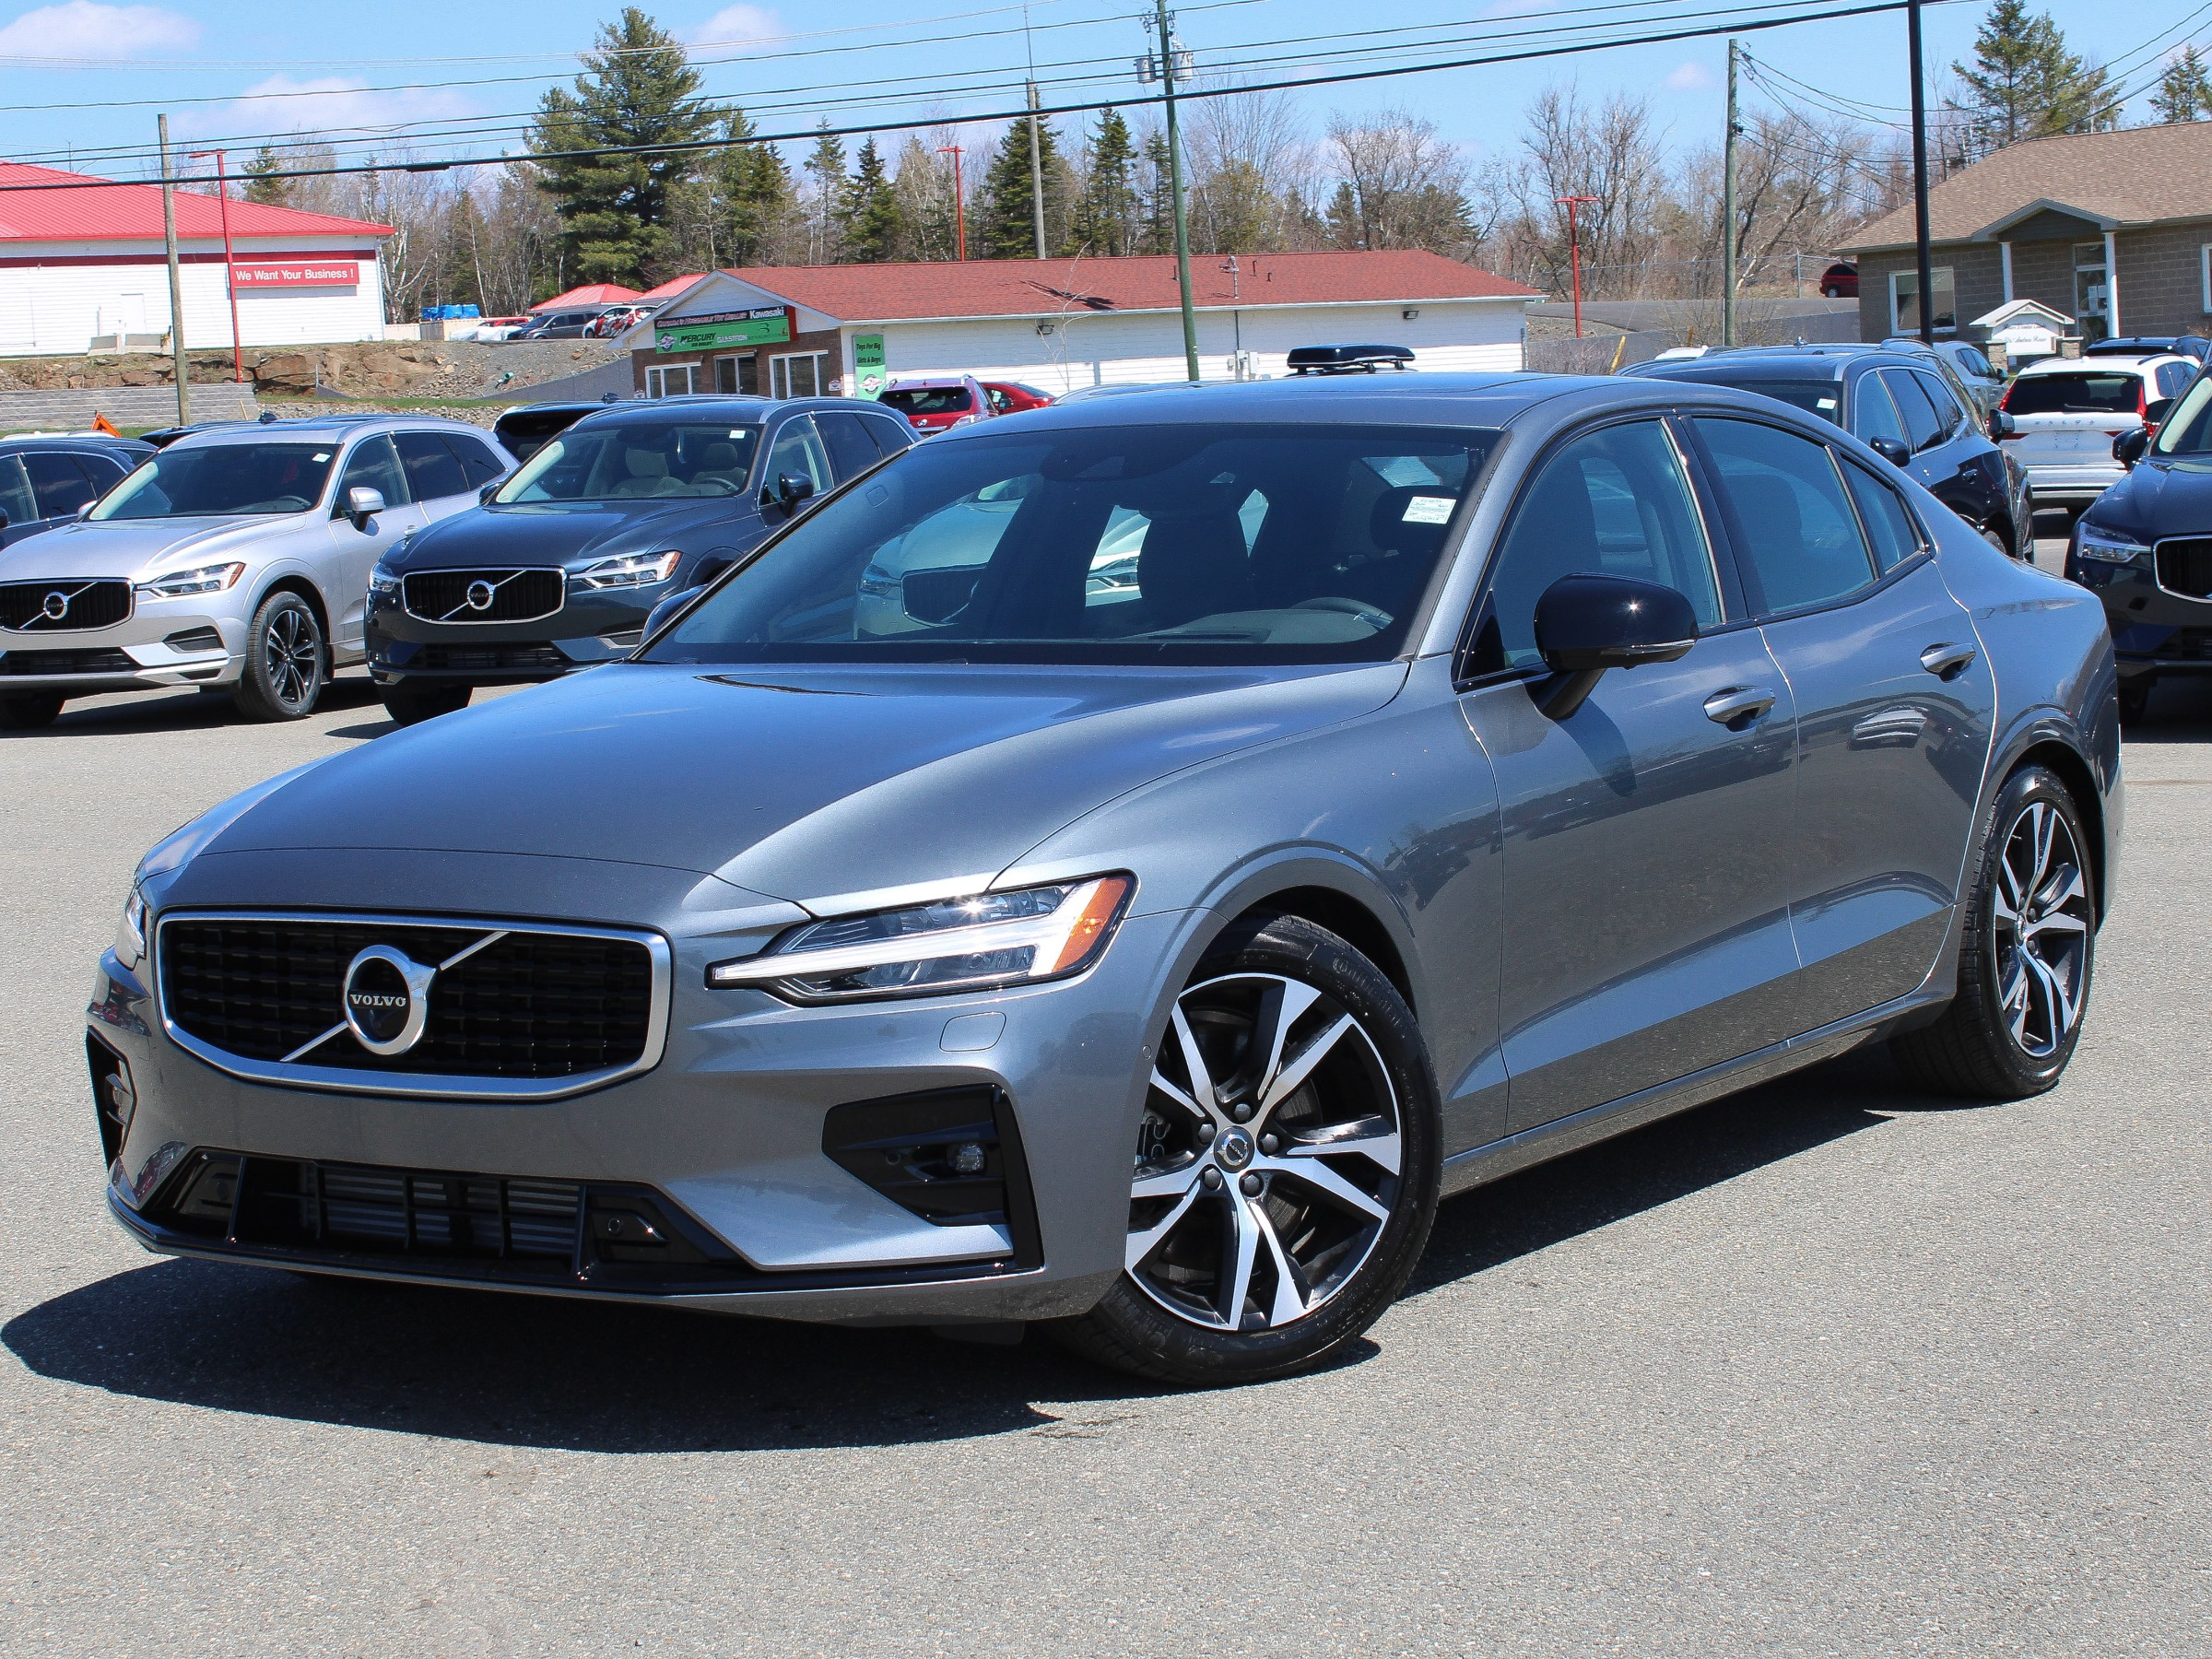 New 2020 Volvo S60 T6 R-Design Intermediate Luxury in ...